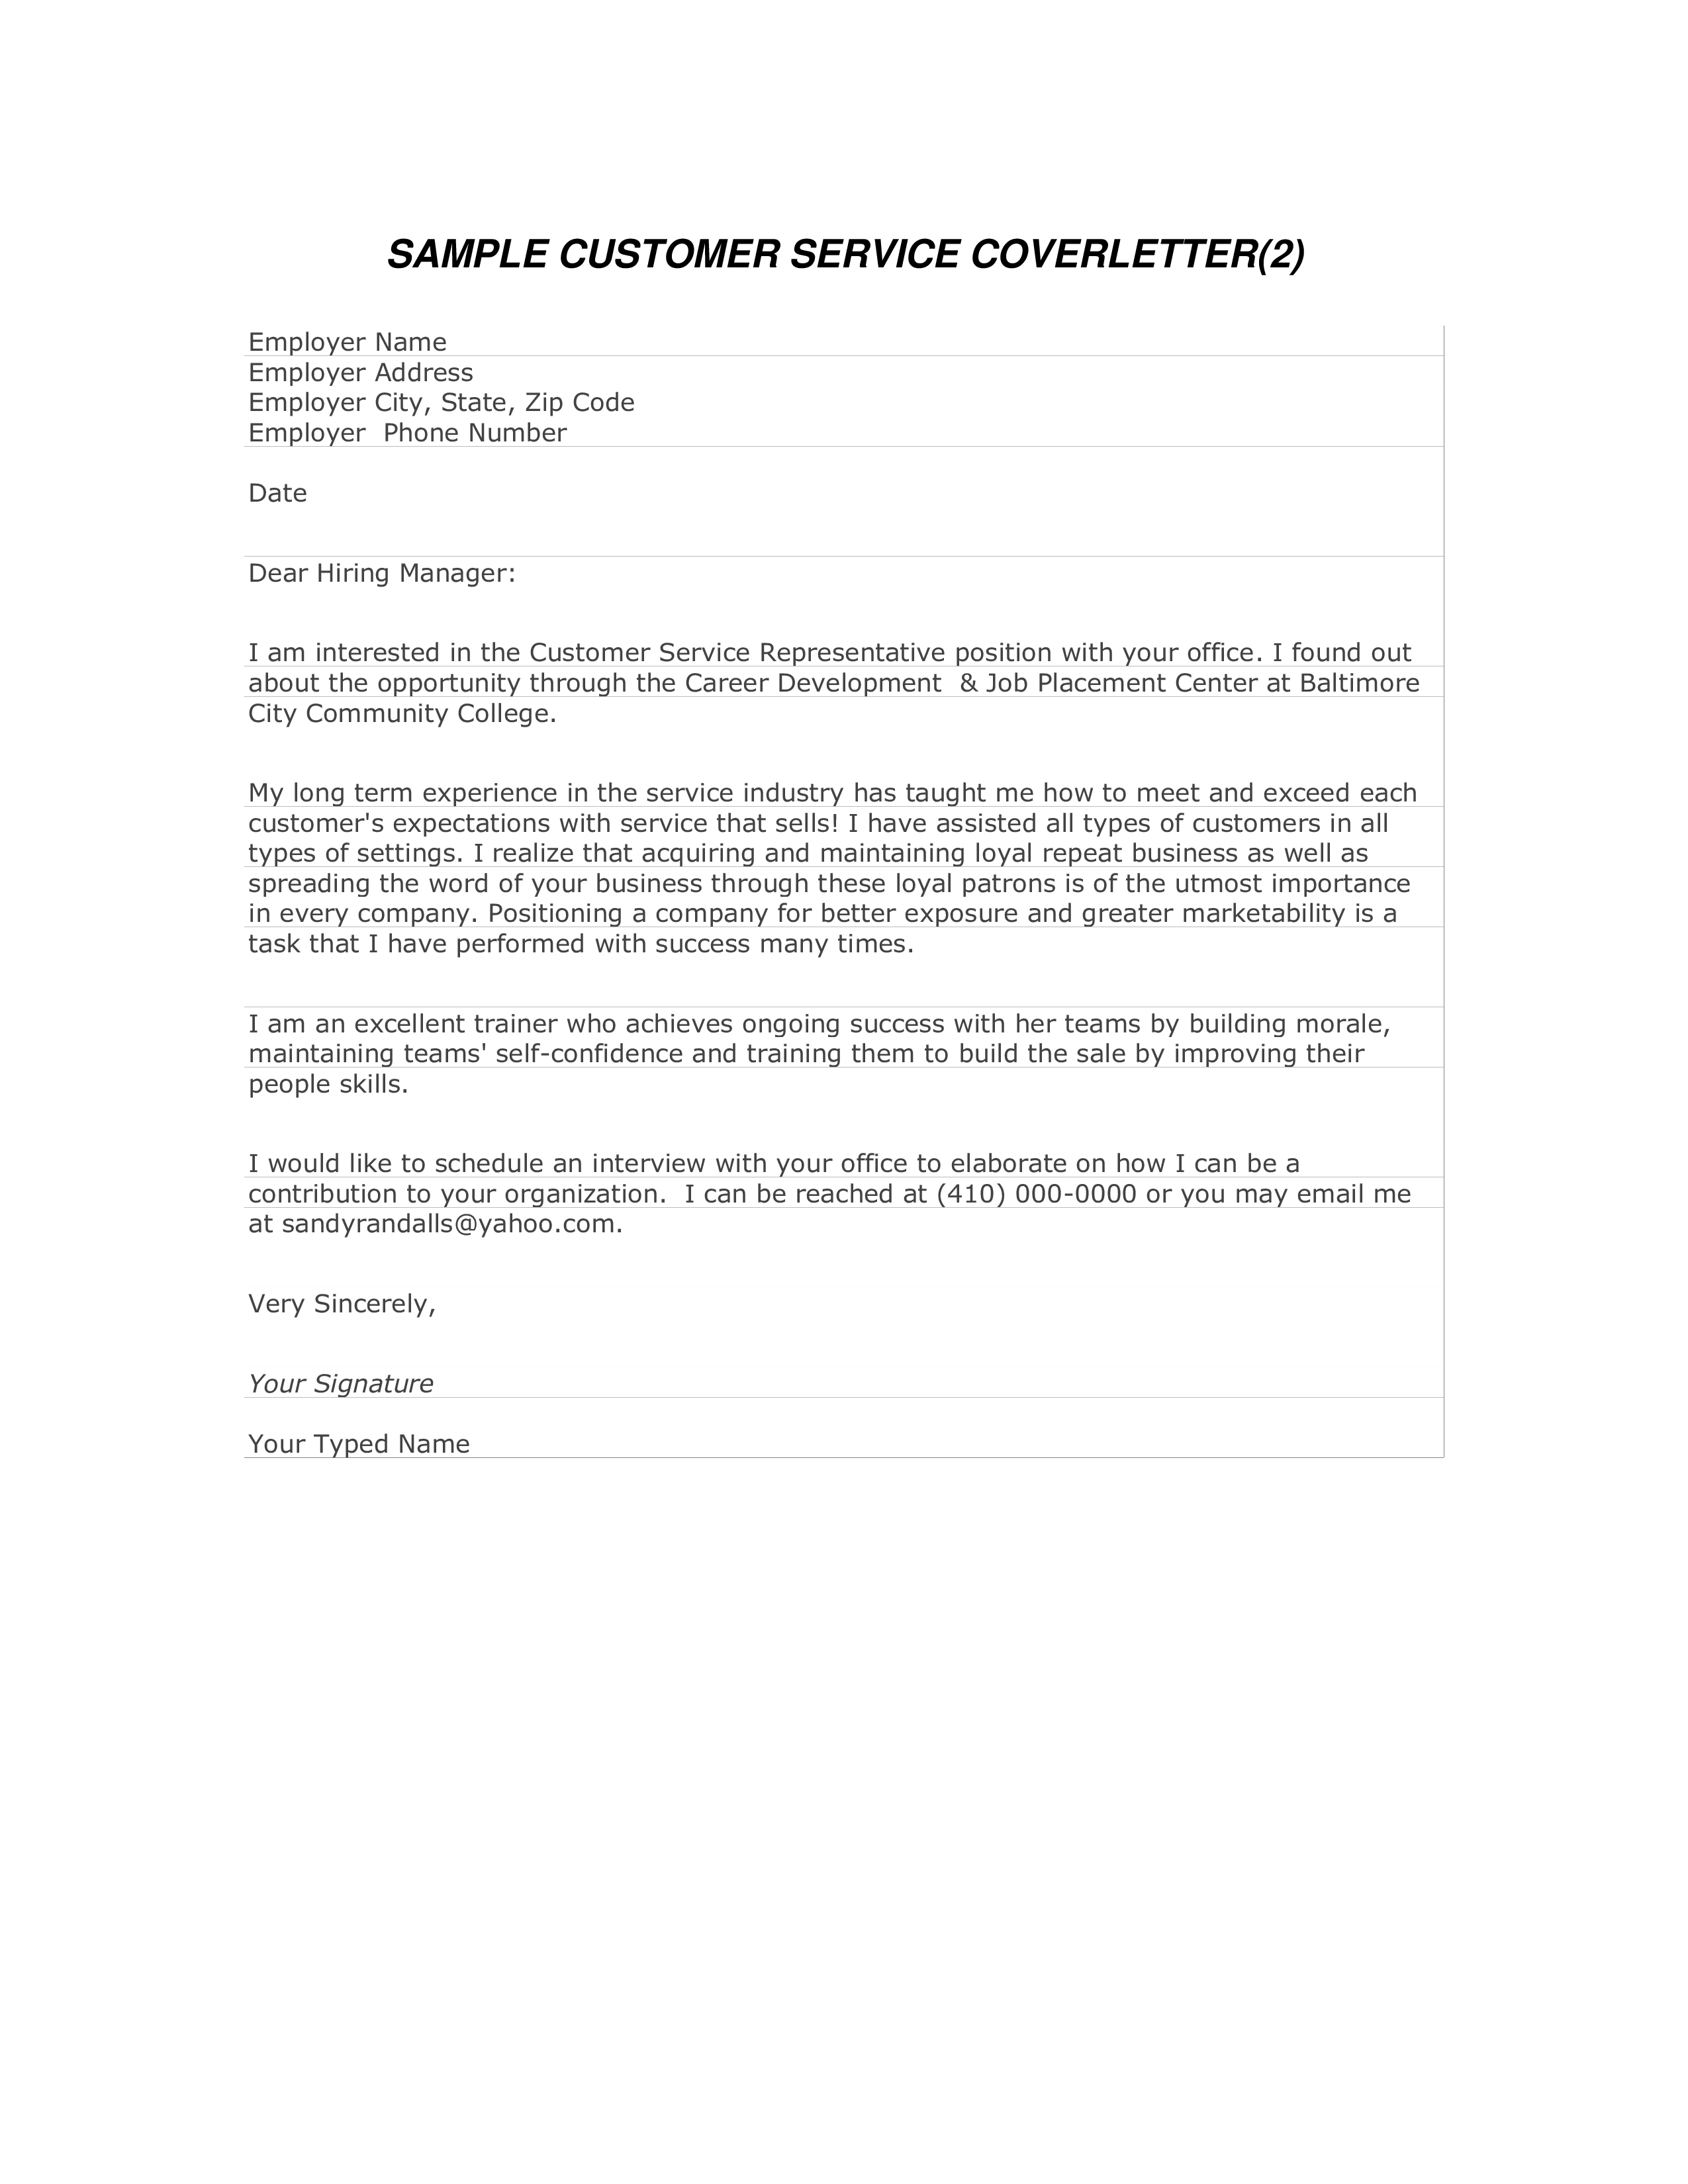 Customer Service Job Cover Letter | Templates at ...